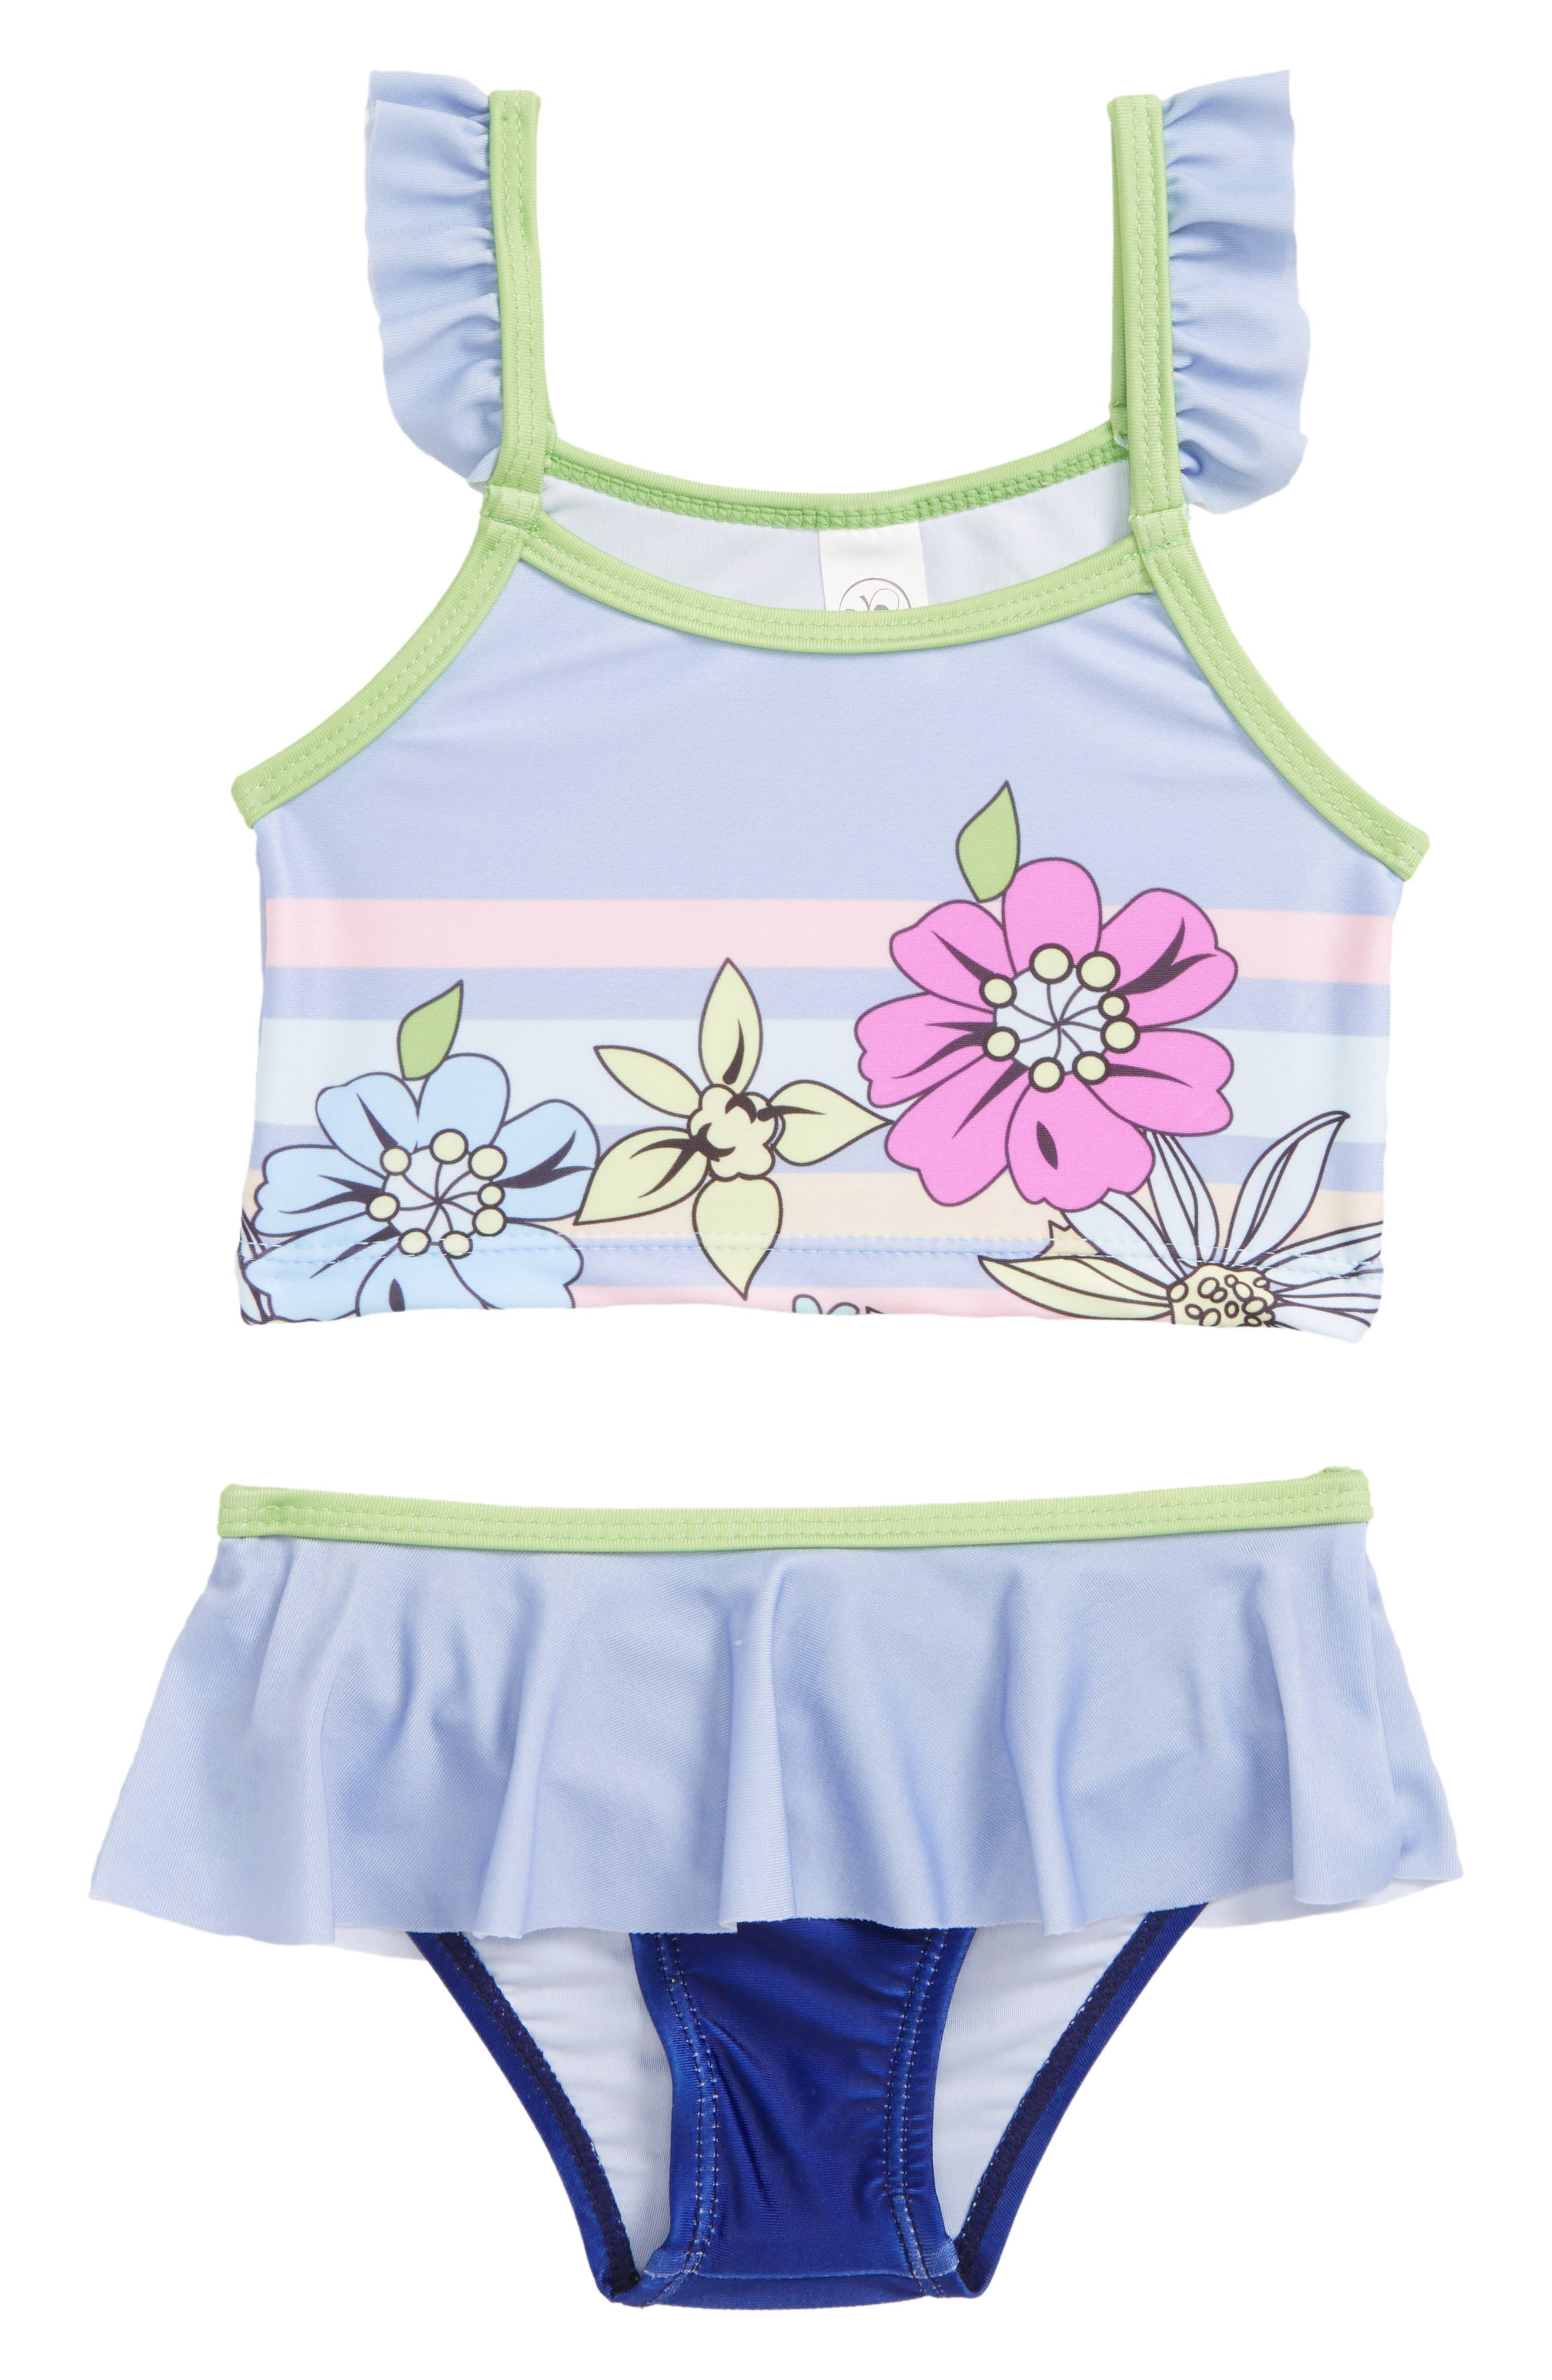 Ruffle Two-Piece Swimsuit,                             Main thumbnail 1, color,                             Periwinkle